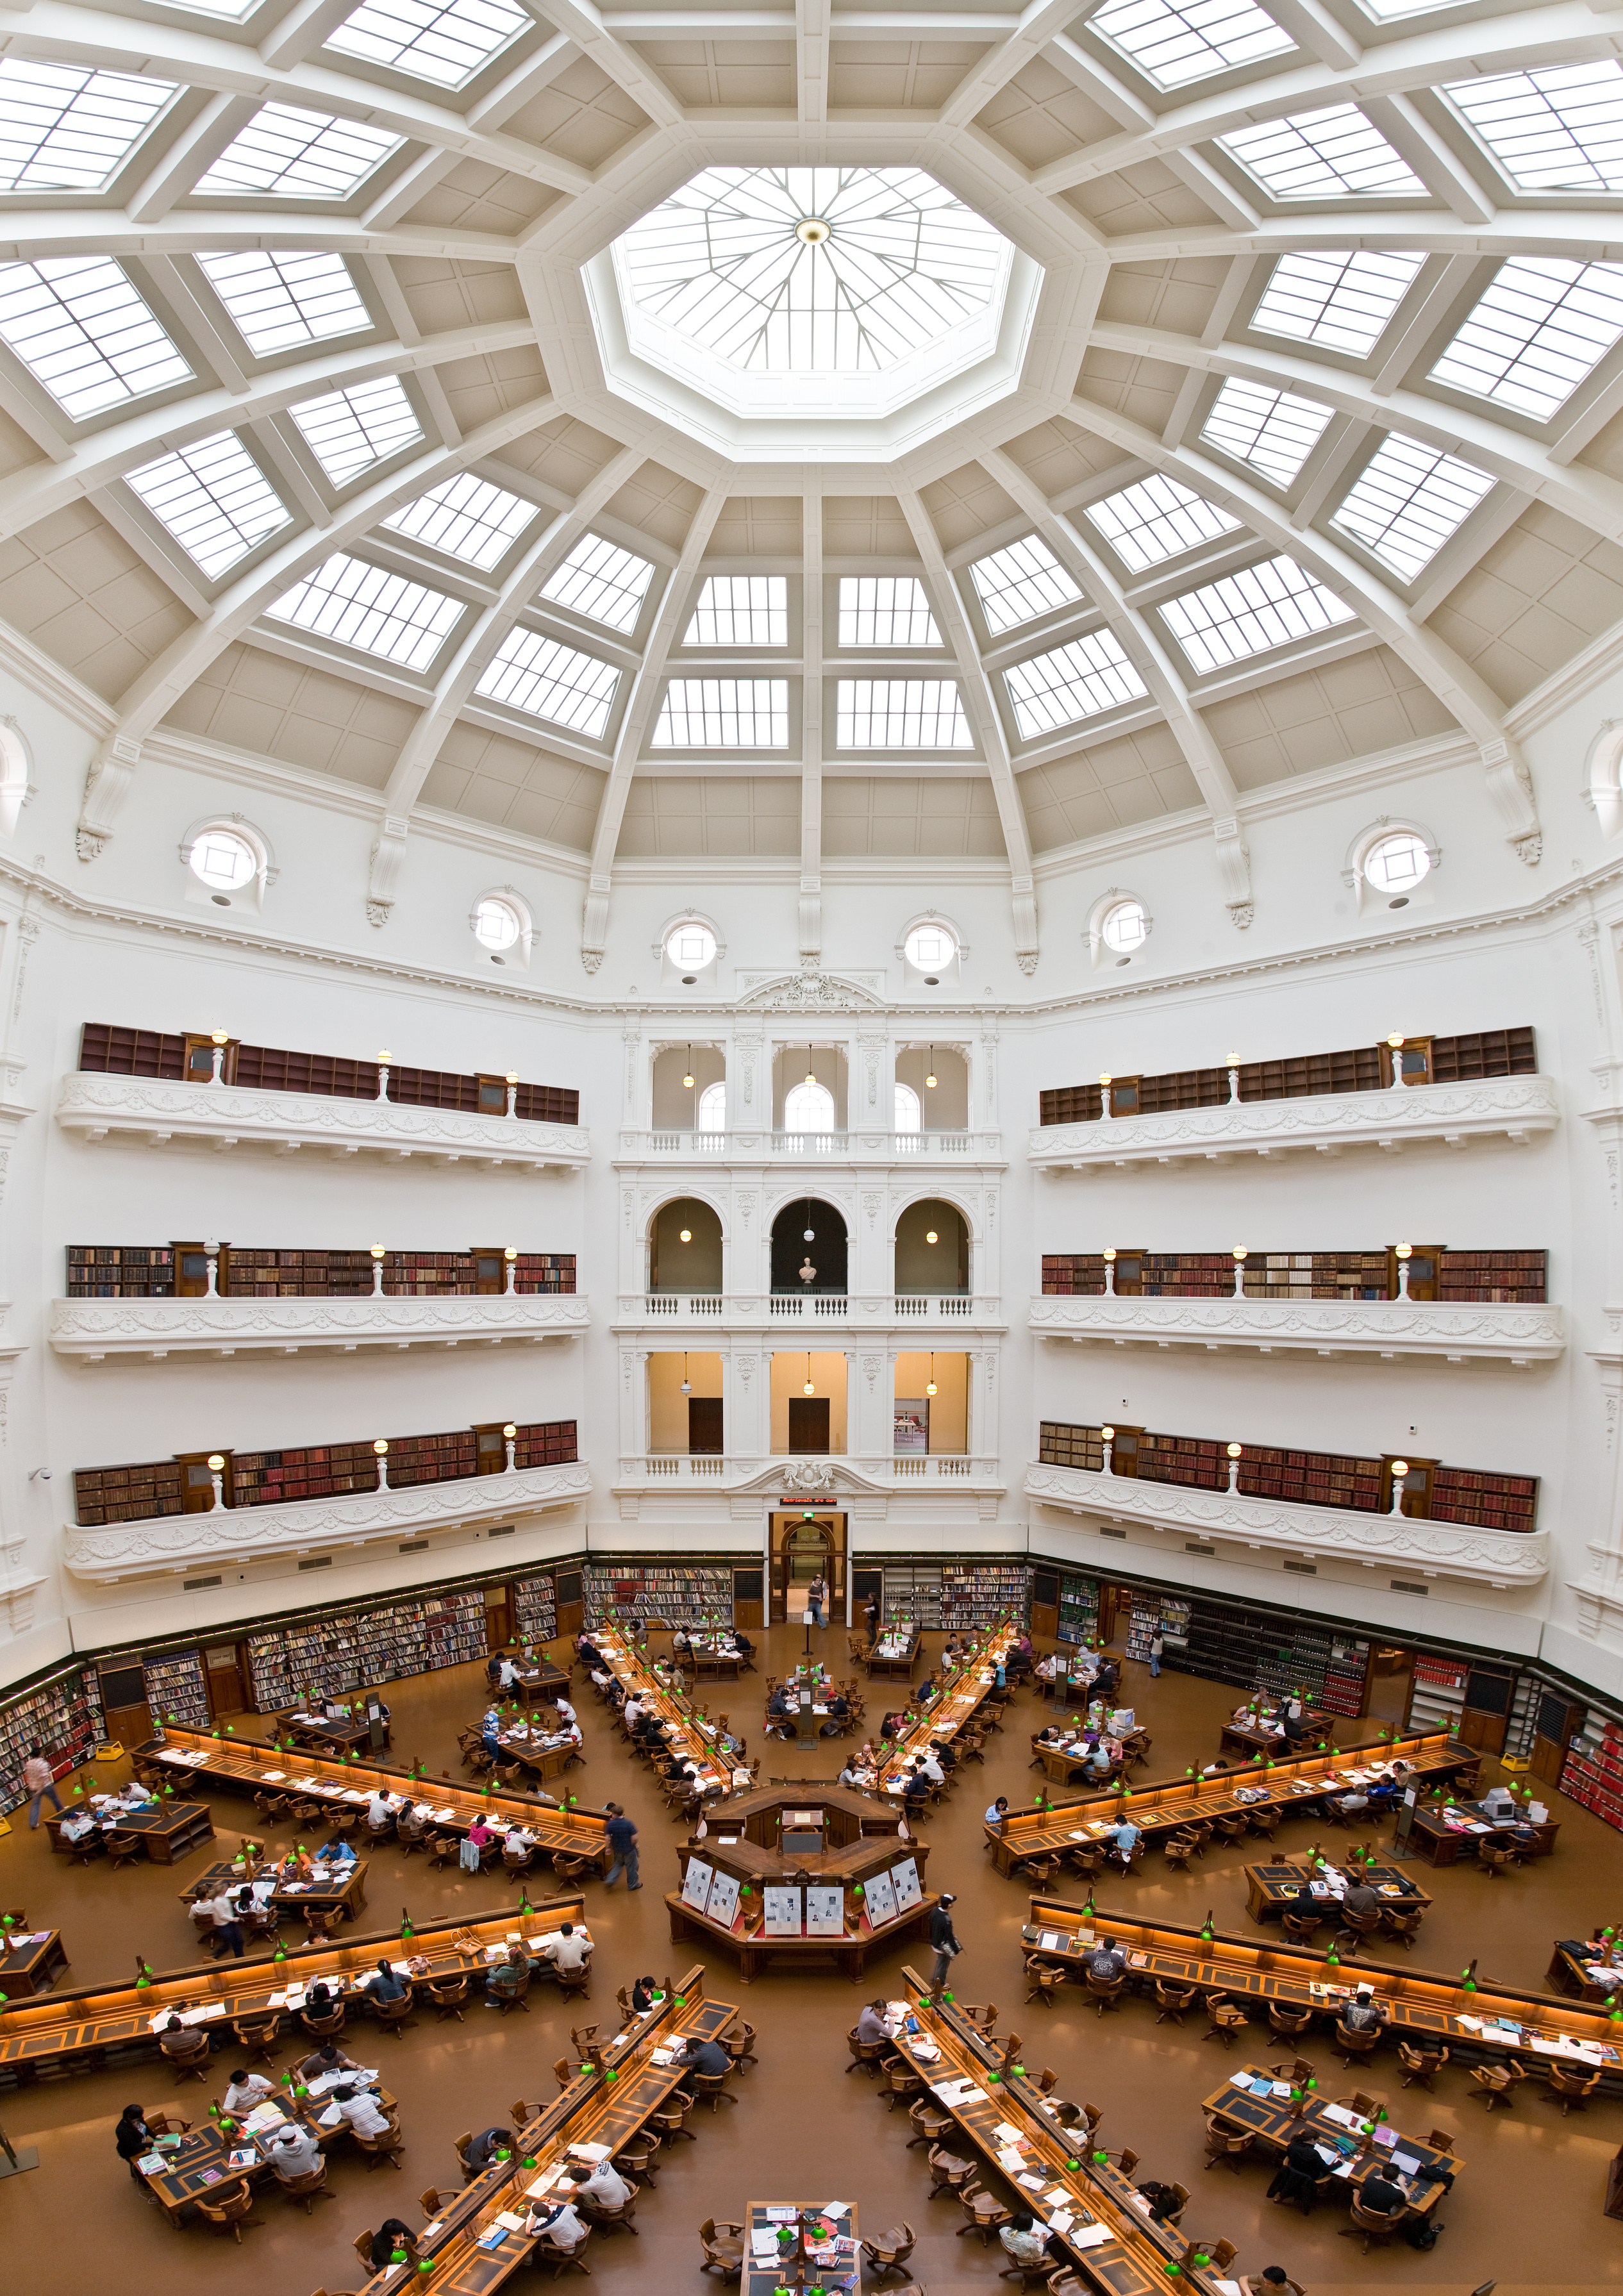 http://upload.wikimedia.org/wikipedia/commons/c/cd/State_Library_of_Victoria_La_Trobe_Reading_room_5th_floor_view.jpg